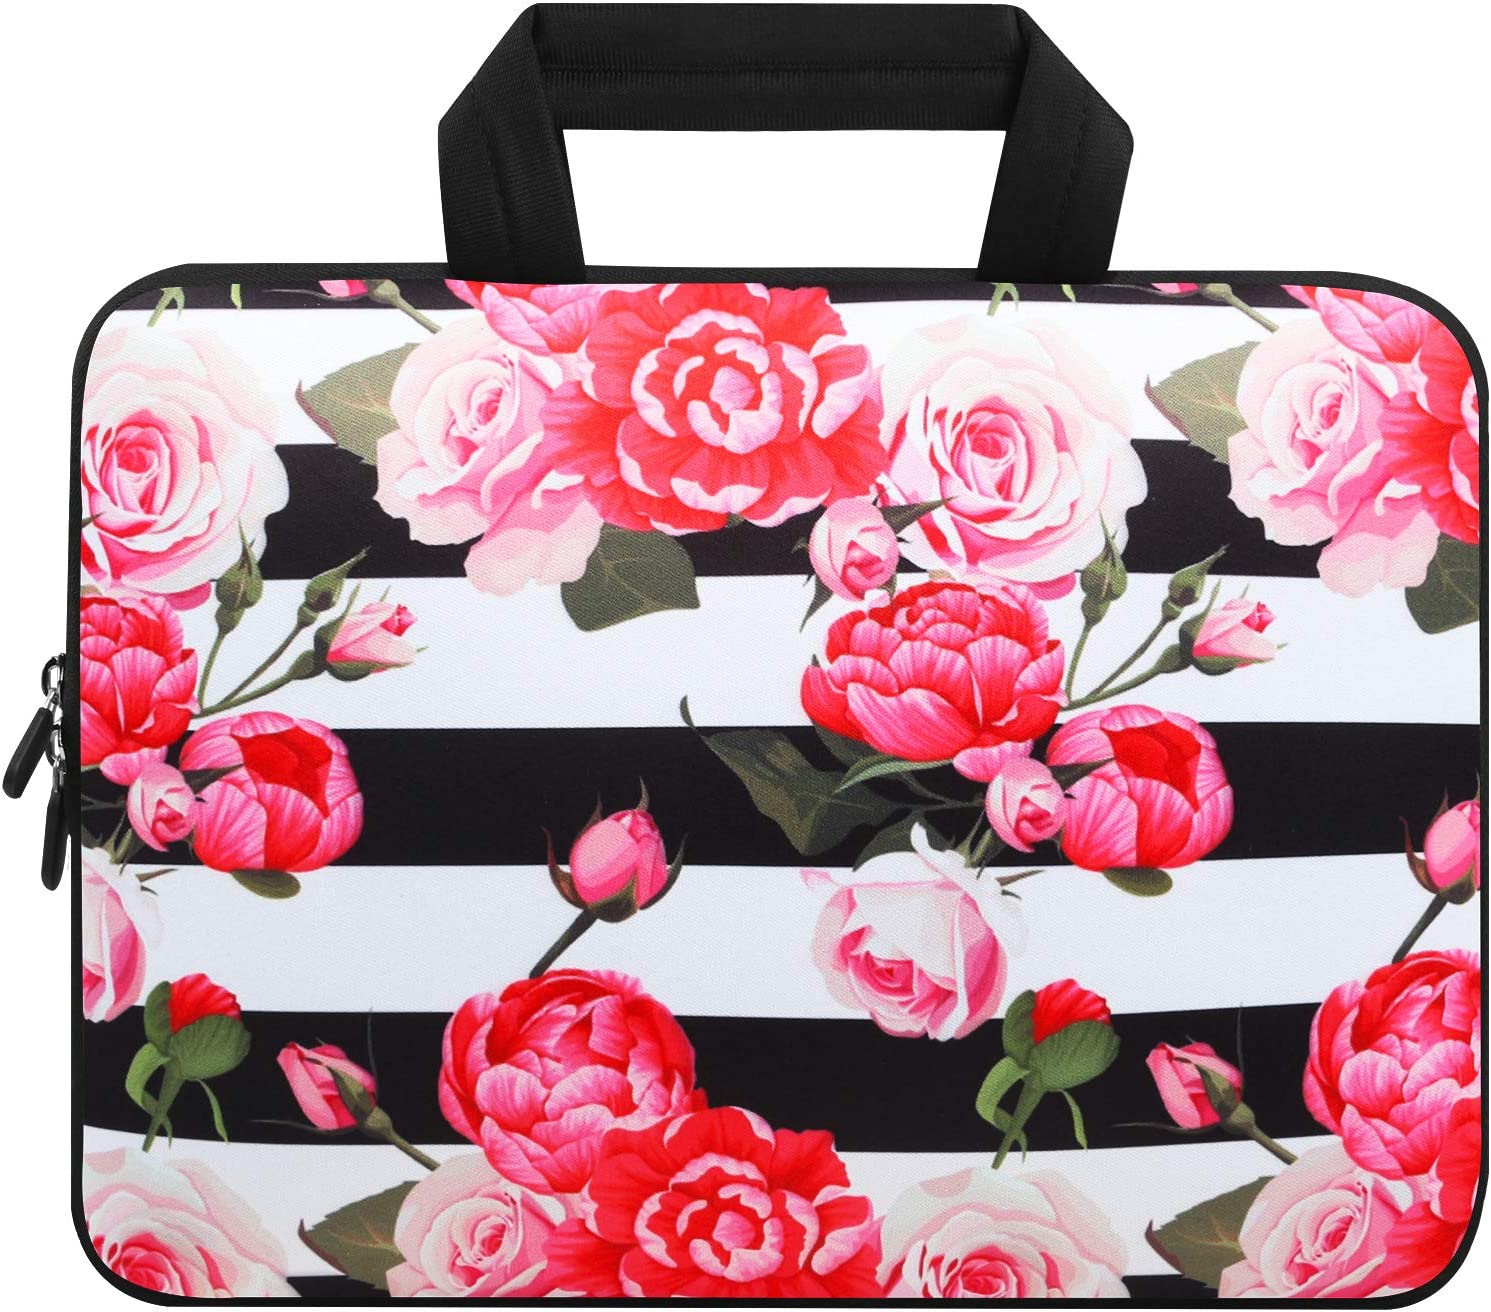 Violet Mist 11 11.6 12 12.1 Inch Laptop Sleeve Bag Carrying Case Neoprene Notebook Protective Bag Chromebook Tablet Cover with Handle for Office Men Women(Pink Peony,12